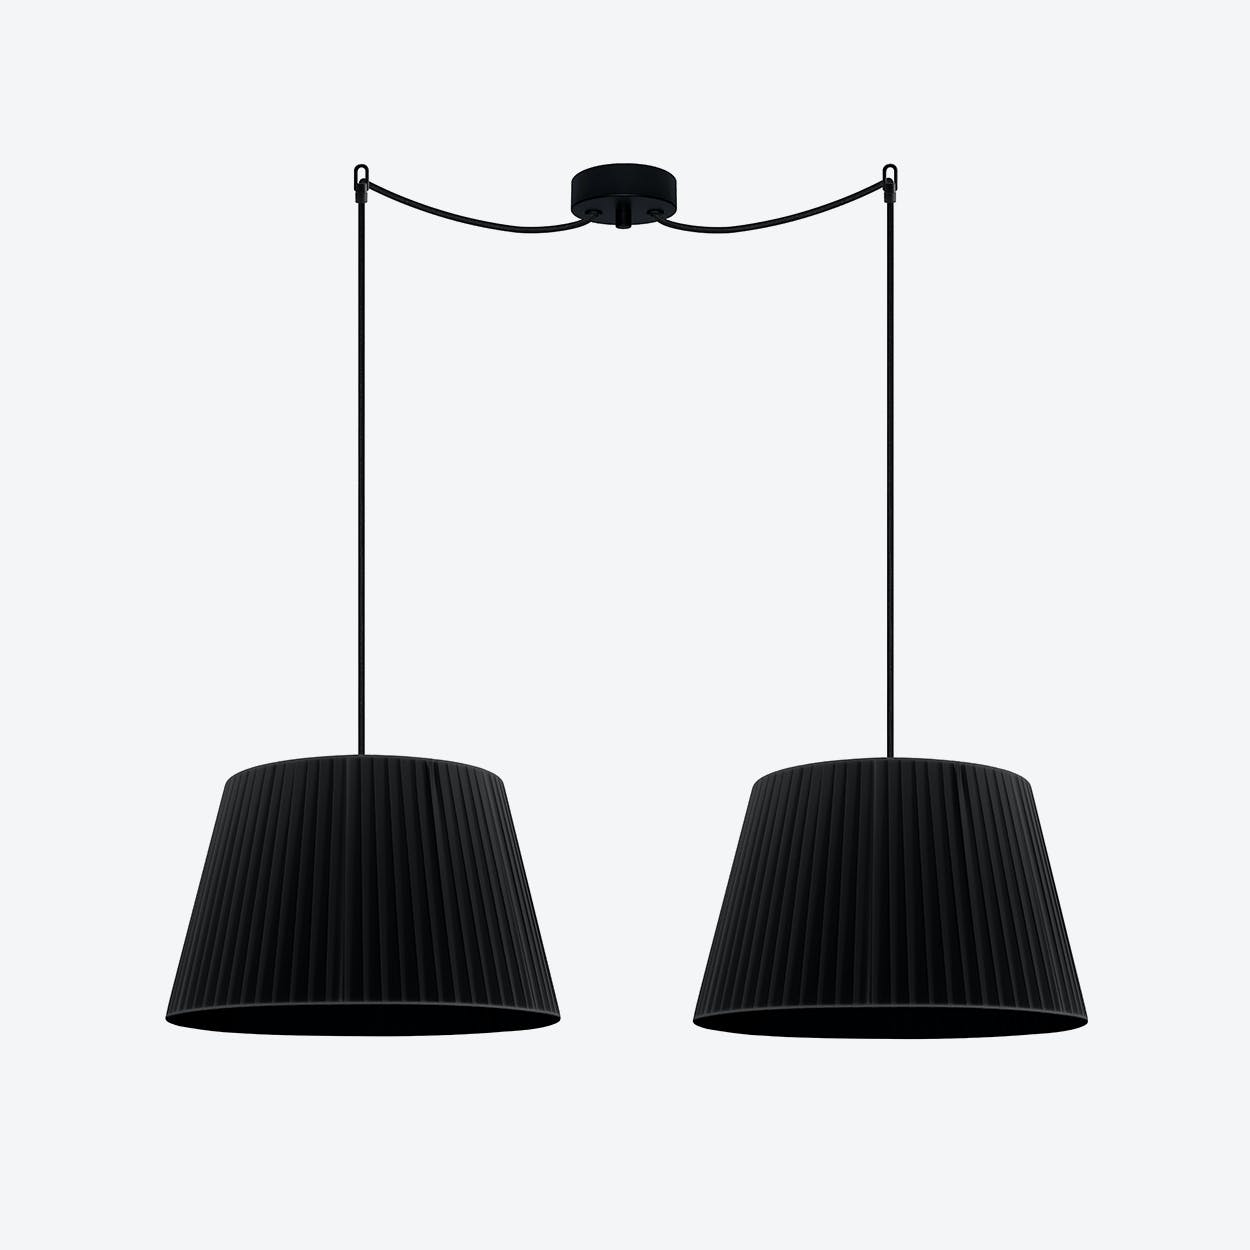 KAMI Double Pendant Light in Black